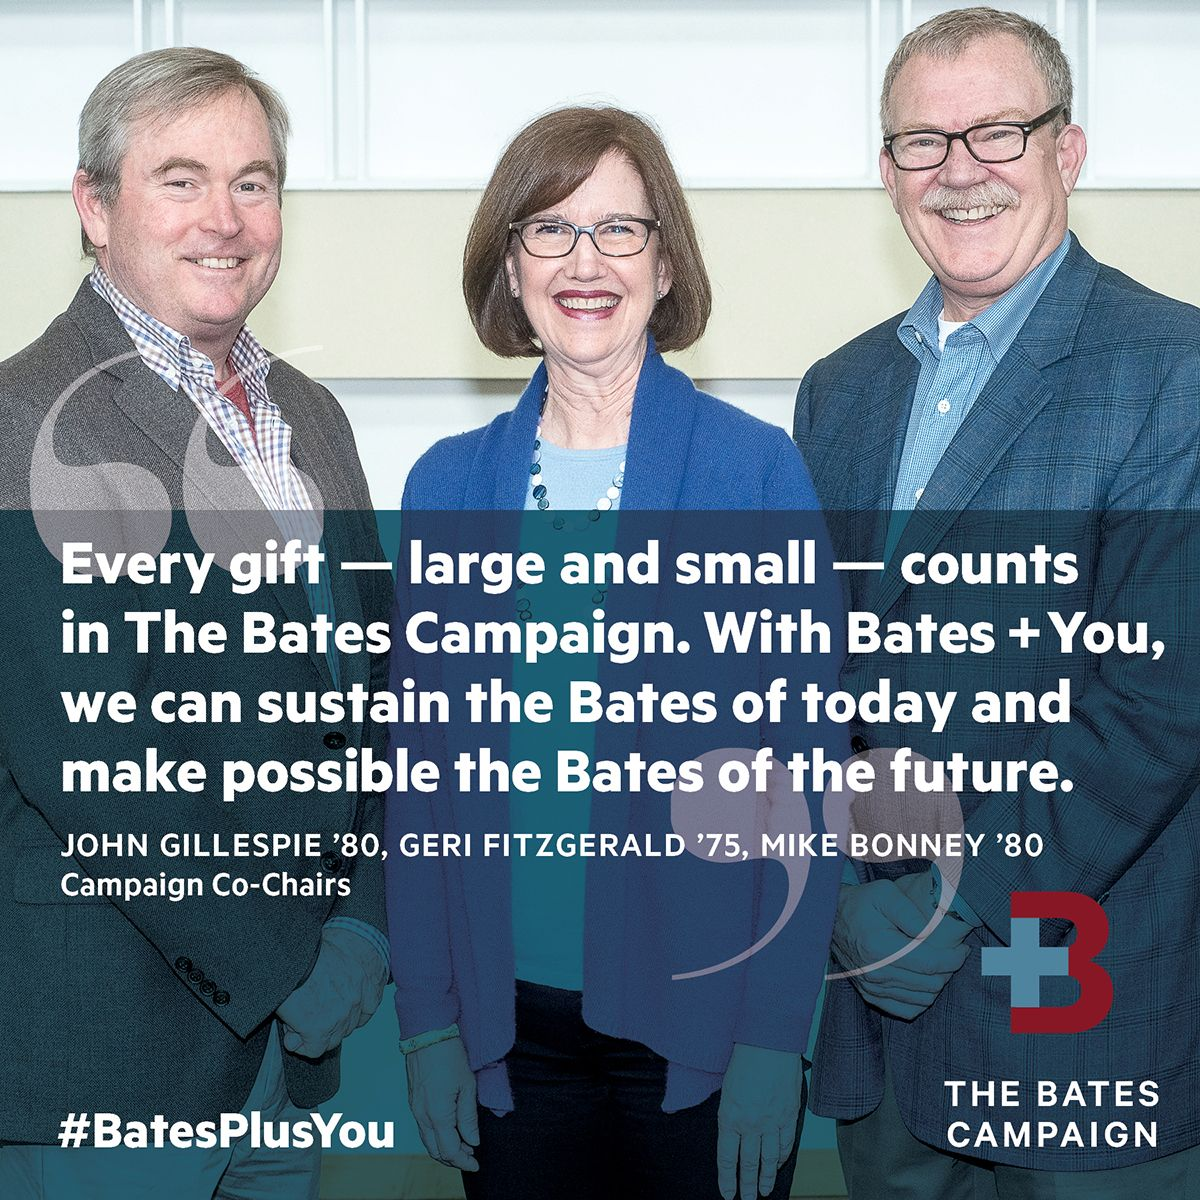 Celebrate the launch of The Bates Campaign and show your support by sharing #BatesPlusYou images and video on social media!